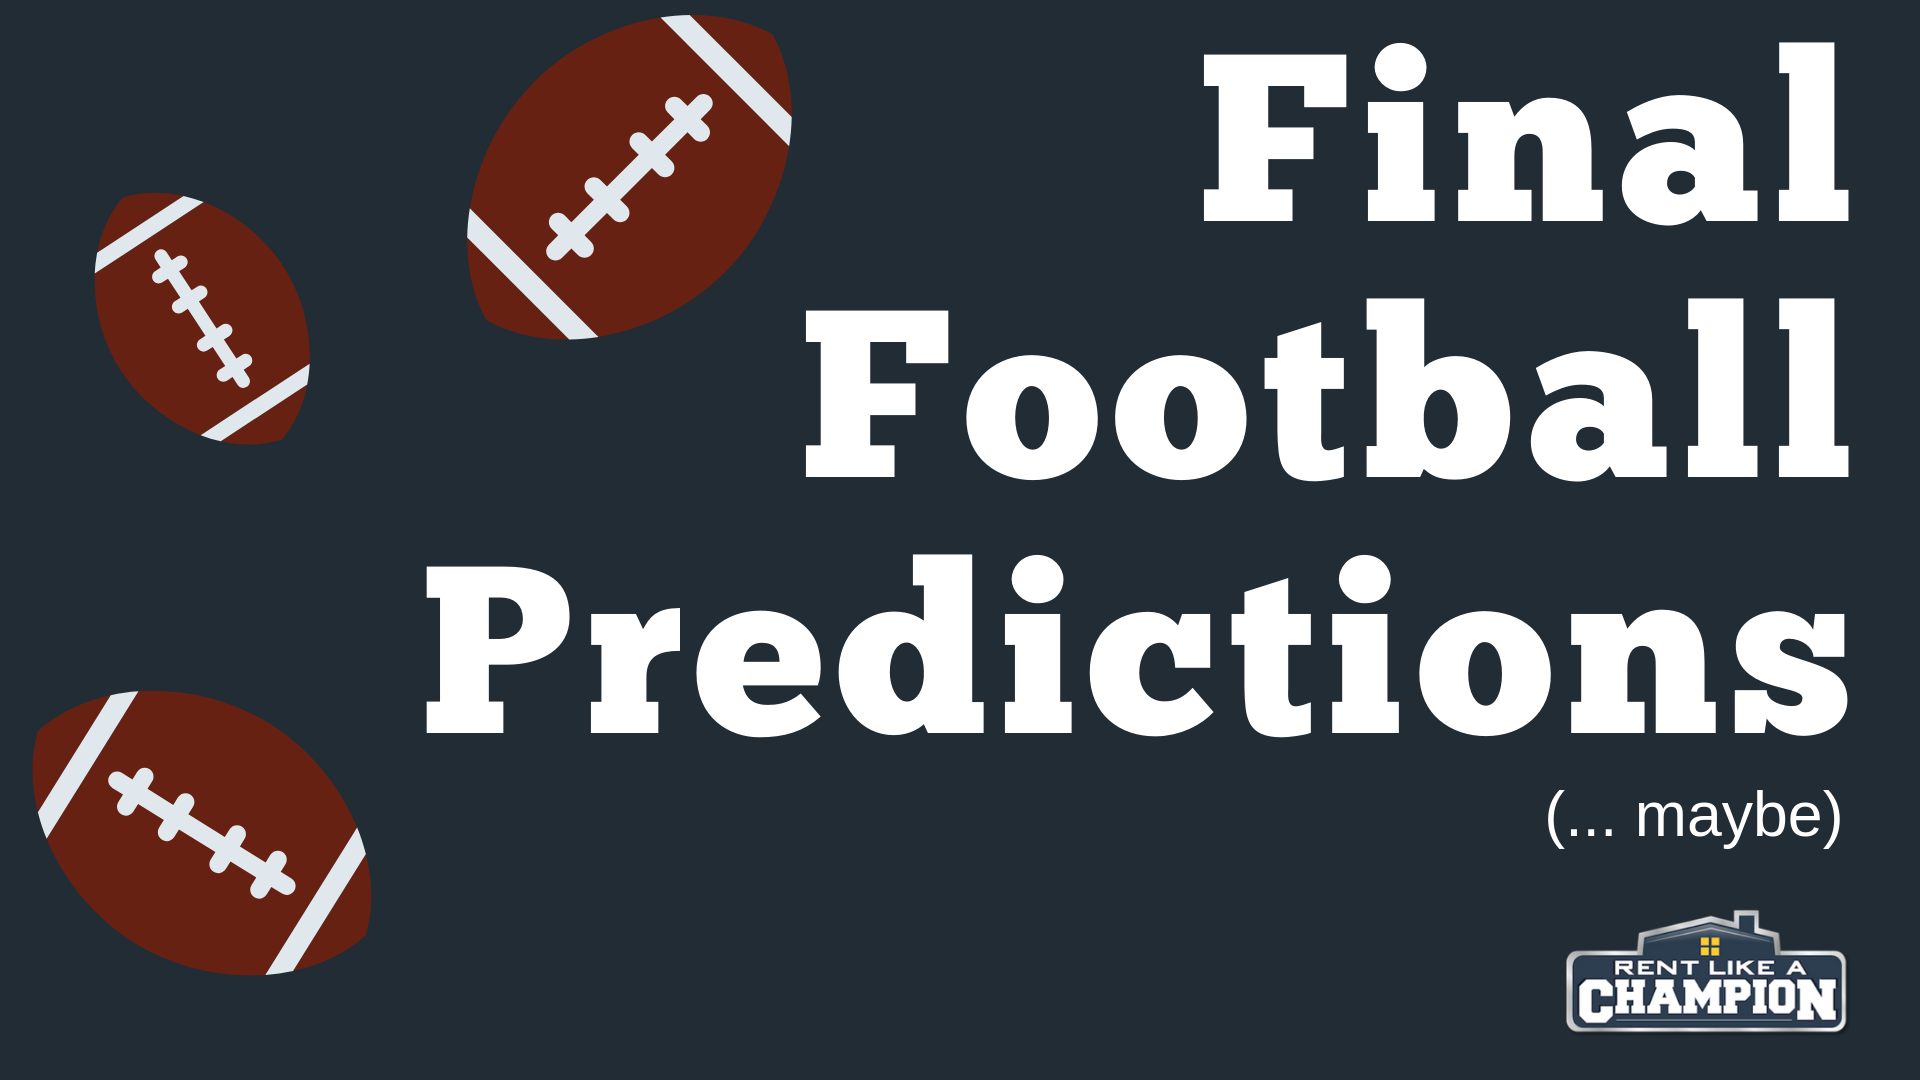 Final Football Predictions